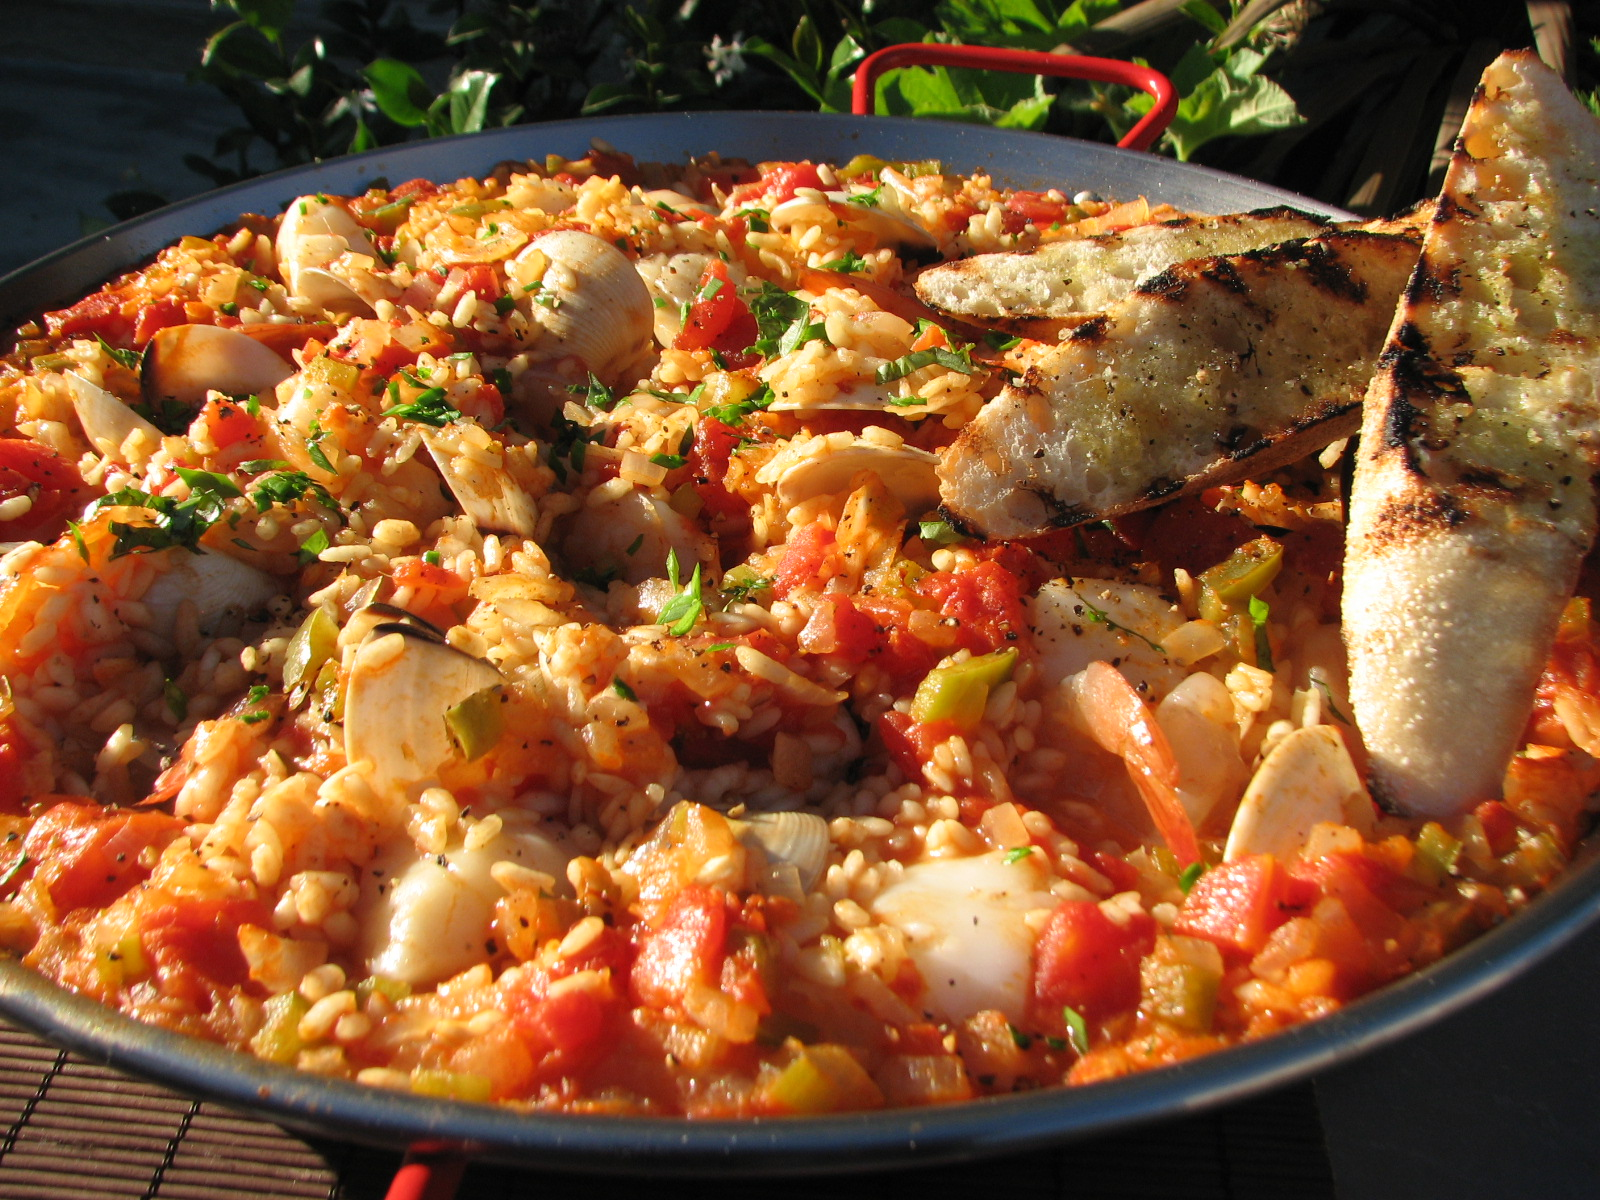 Traditional Mixed Seafood Spanish Paella